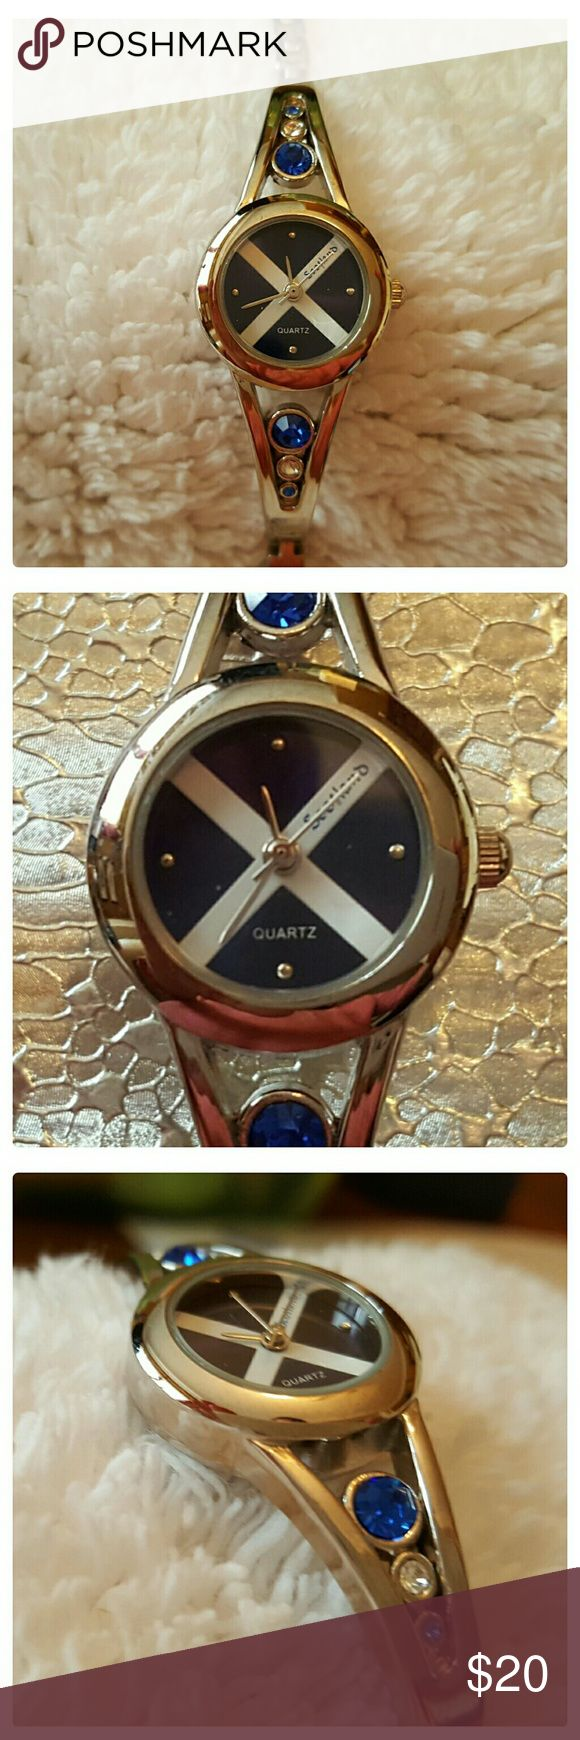 """JUST IN: SS Ladies Watch (Never Worn) Stainless Steel ladies watch with the Scottish St Andrews Flag on face. Bought in Scotland, gifted to me but never worn.  I just don't wear watches anymore. Will fit upto 8 """" wrist. Has pretty blue and clear crystals on either side of watch face. Will need a new battery. Excellent condition. Stainless steel does not tarnish, is durable and scratch resistant. Ravel Accessories Watches"""